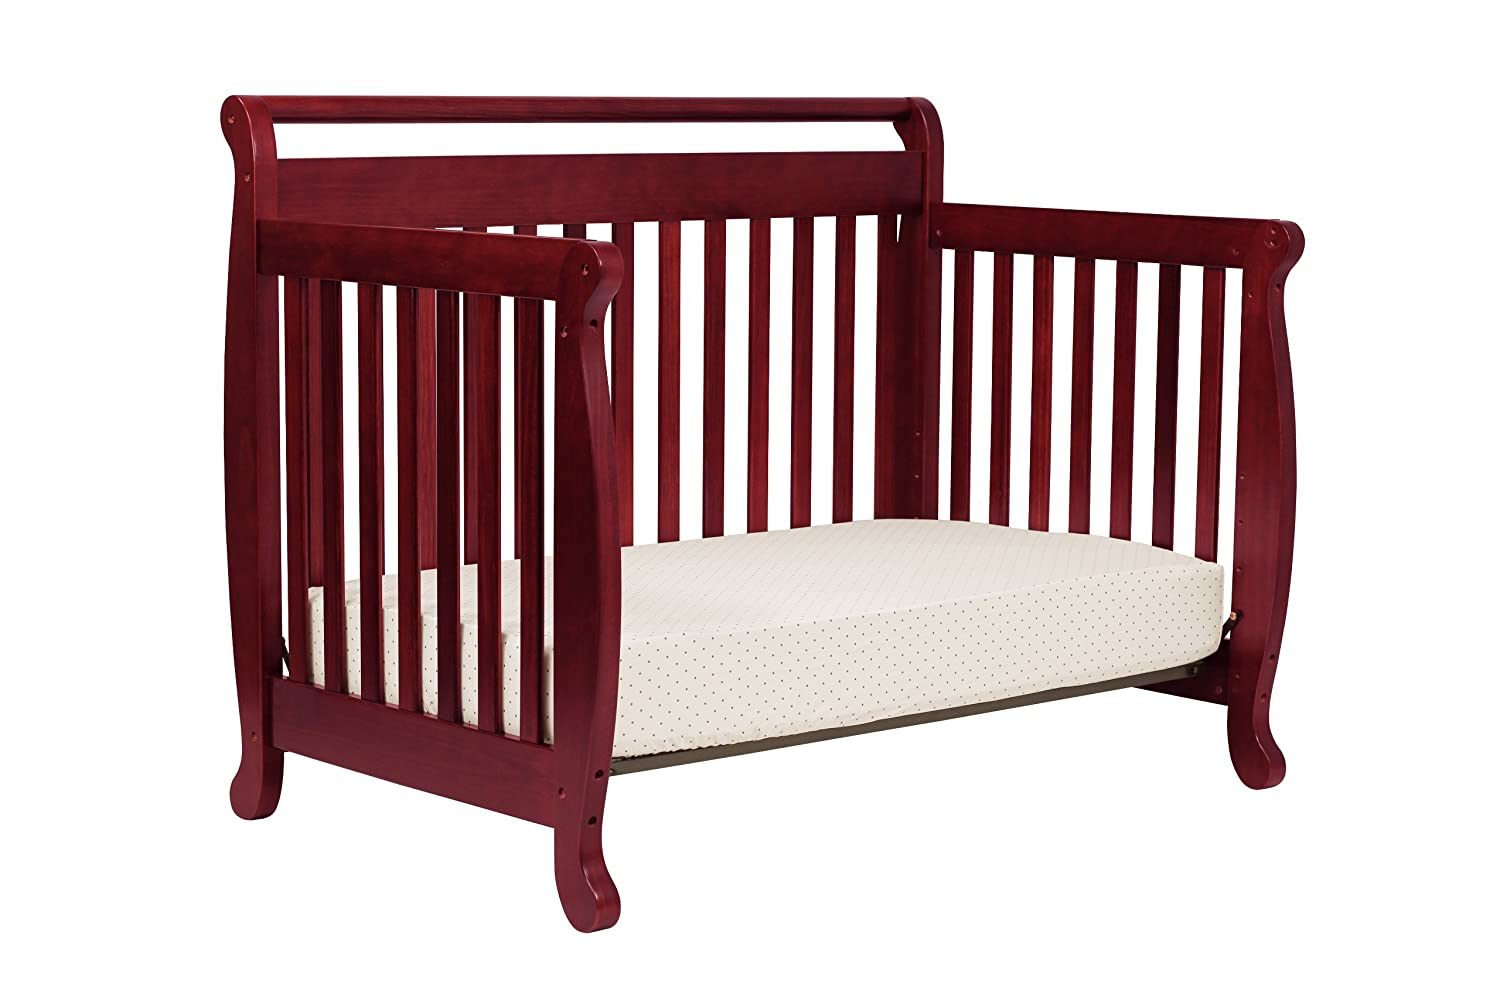 serta img sams fall s convertible river club choose white in w ip a sam bianca your cribs color size crib